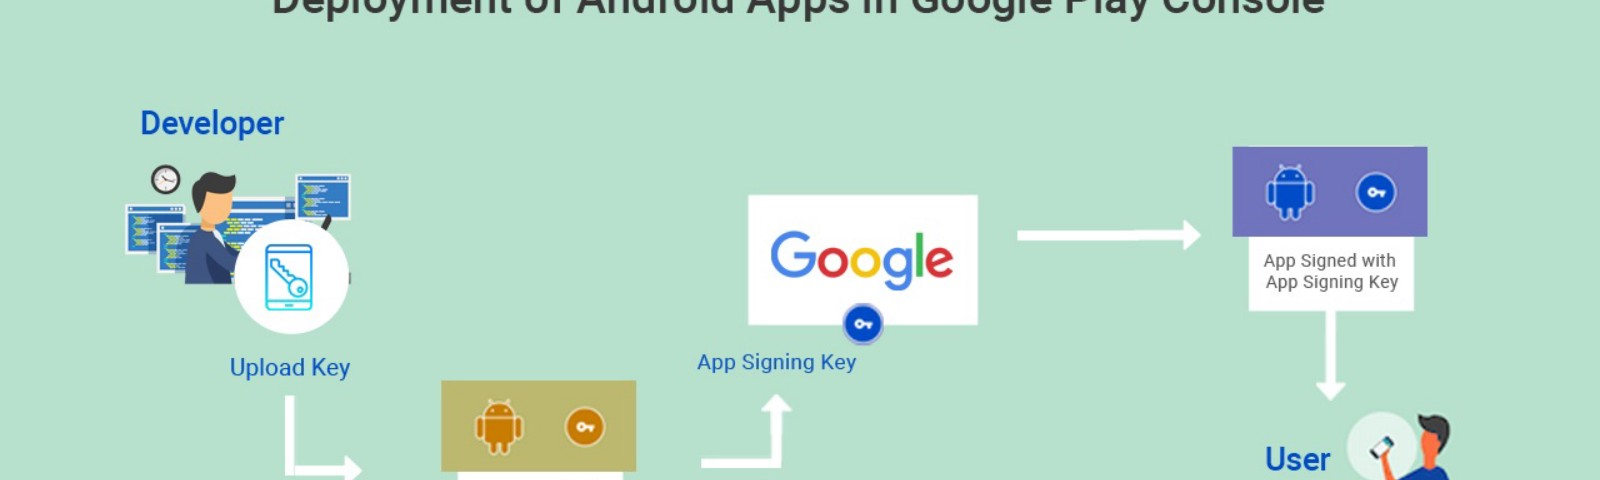 How to Deploy the Android Apps in the Google Play Console